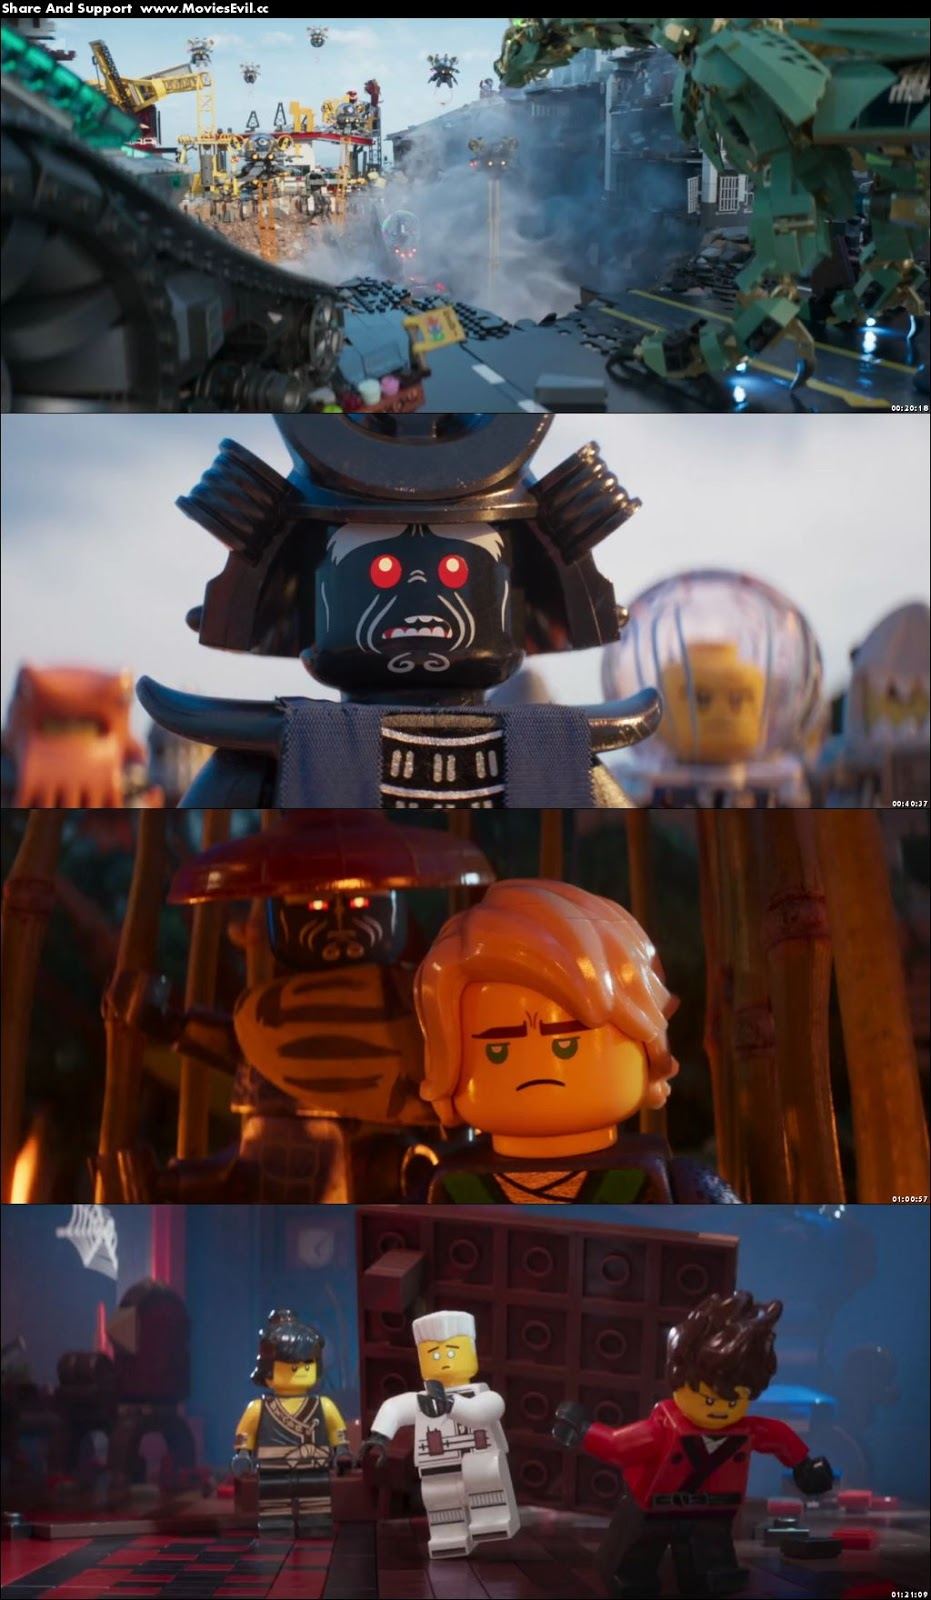 The LEGO Ninjago Movie 2017 full movie download,The LEGO Ninjago Movie 2017 watch online free,The LEGO Ninjago Movie 2017 movie free download,The LEGO Ninjago Movie 2017 hindi dubbed,The LEGO Ninjago Movie 2017 full movie dual audio download,The LEGO Ninjago Movie 2017 direct link download